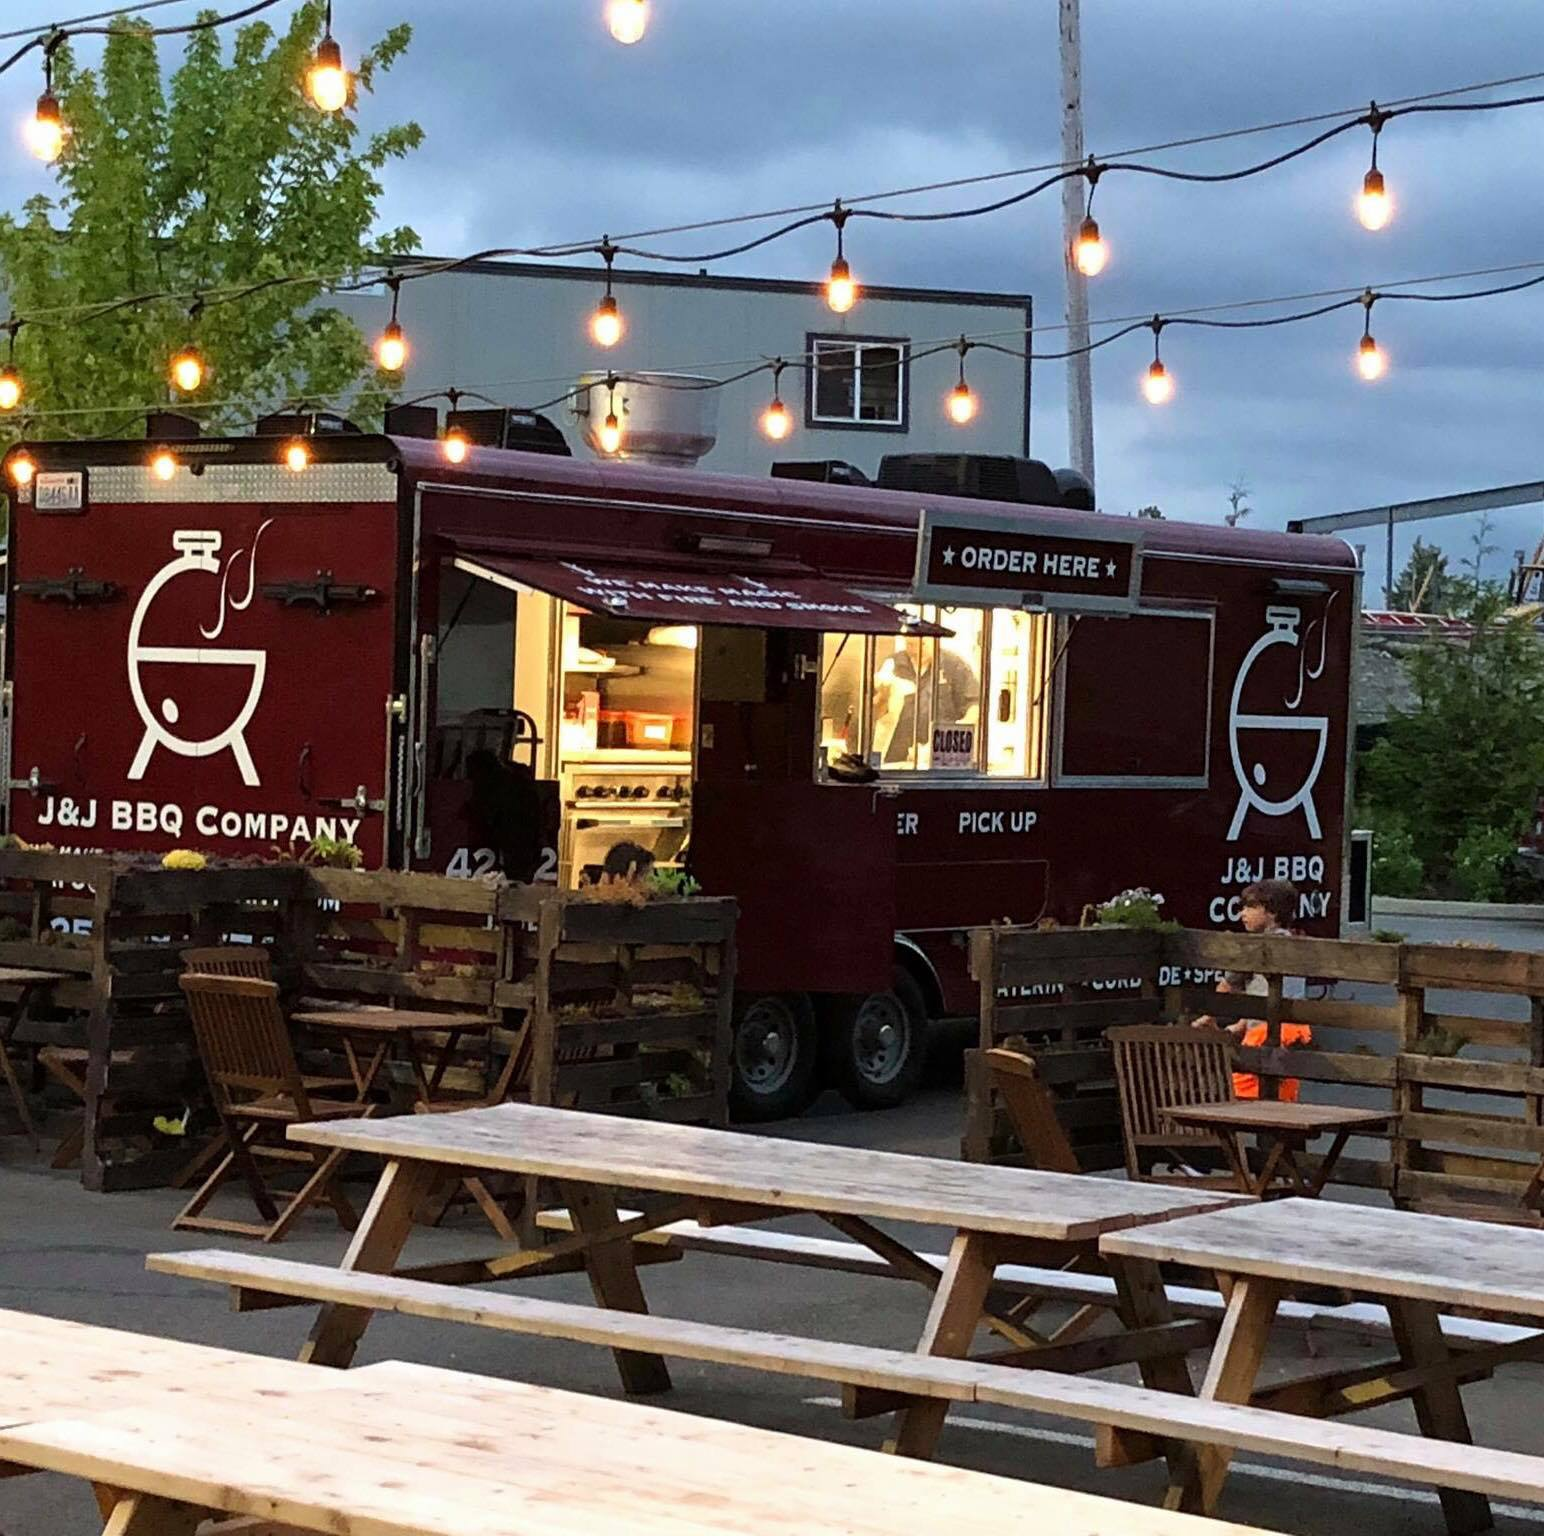 JJ BBQ 1 qWC2ig.tmp  - Thirsty Thursday ~ Guest Food Truck and $8 Glass Specials